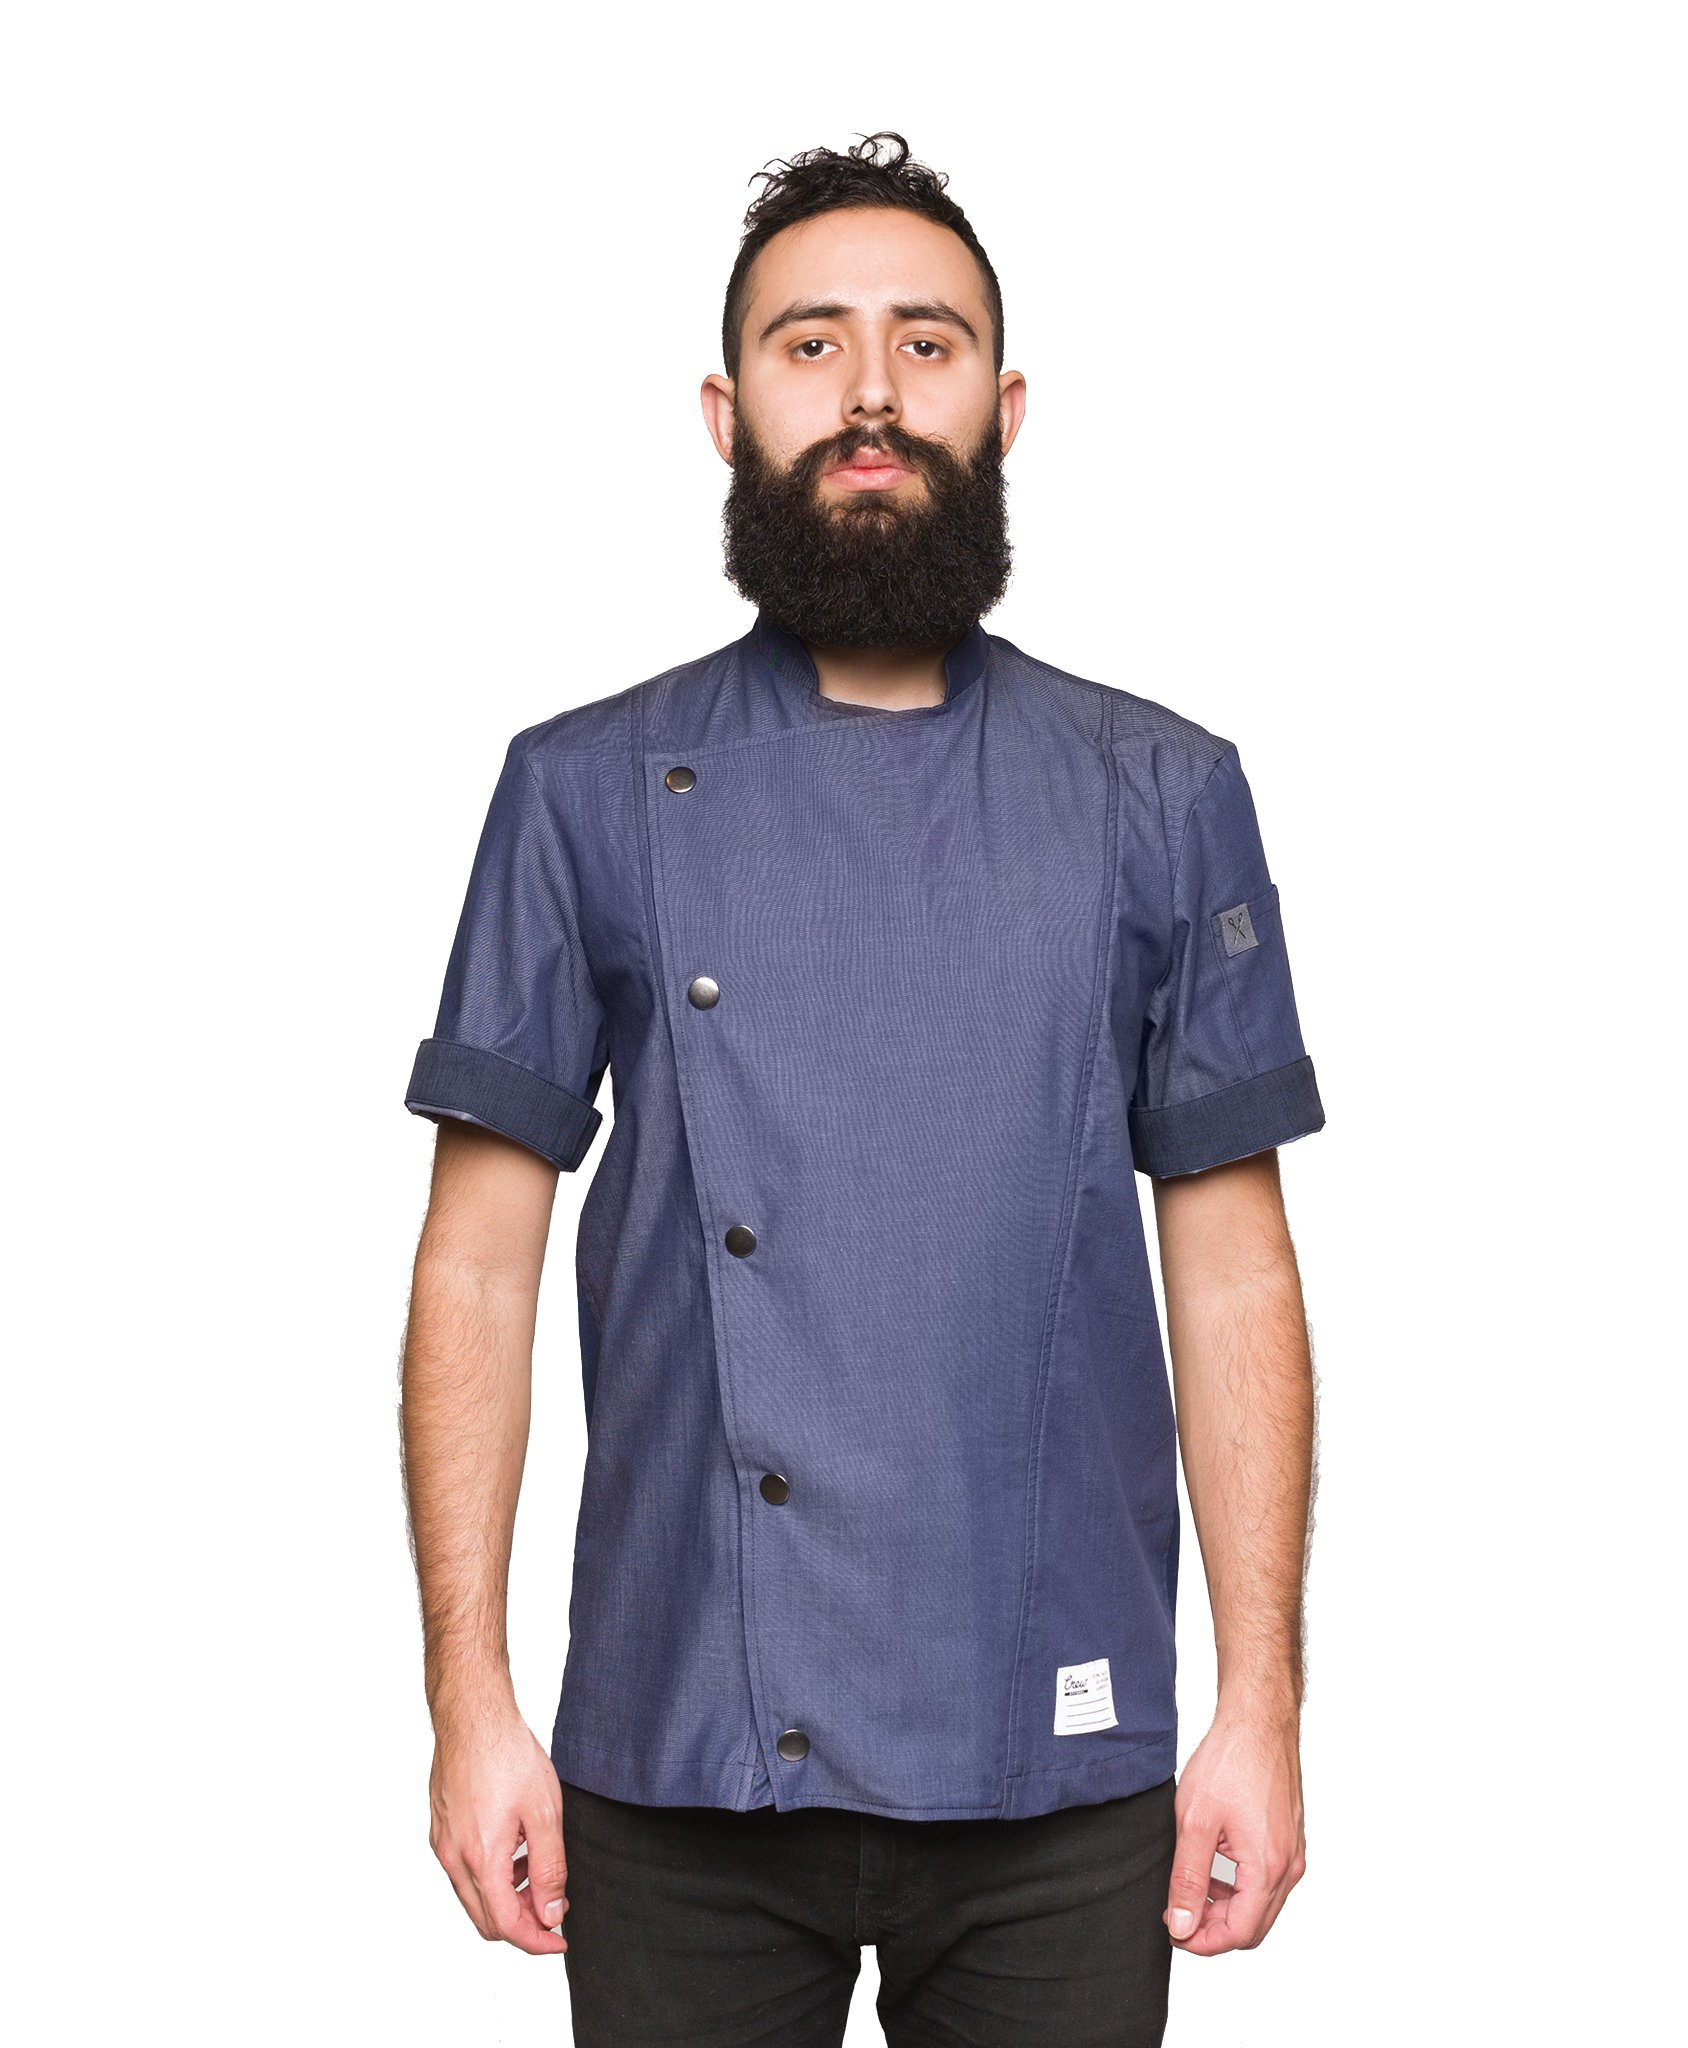 Crew Apparel Men's Chef Coat The Hipster Made In America (Navy, Large)